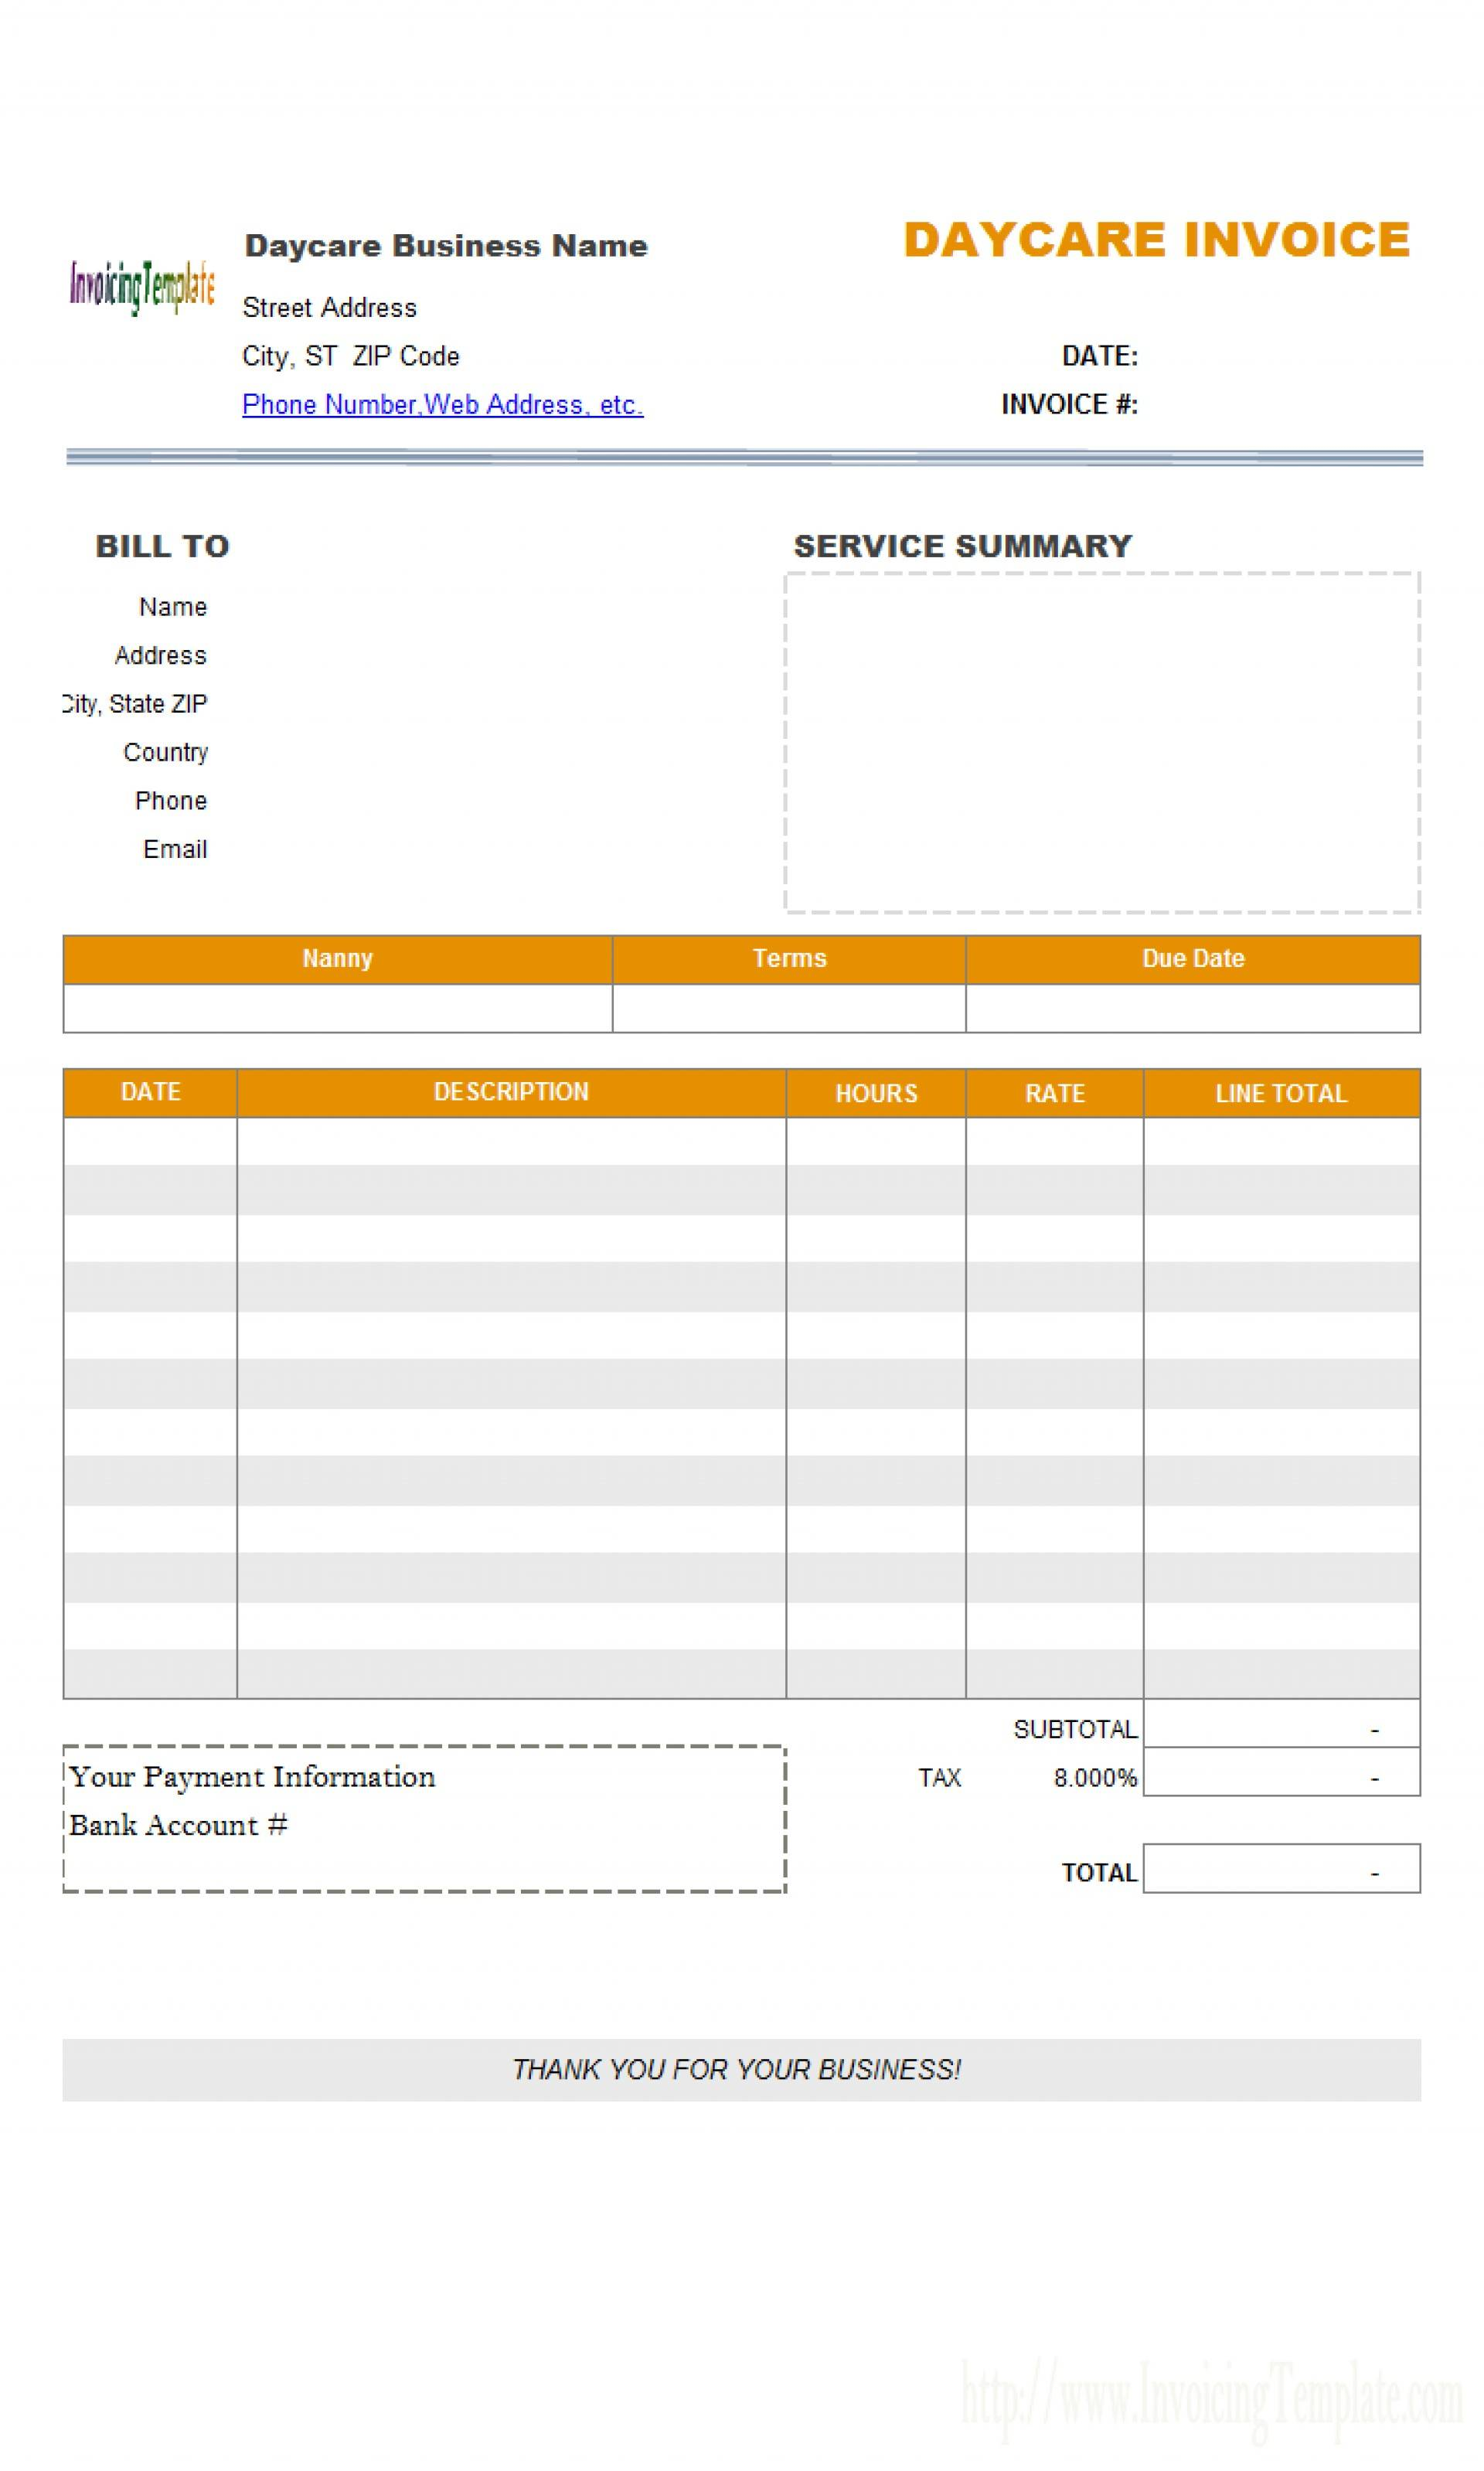 Home Daycare Invoice Templates